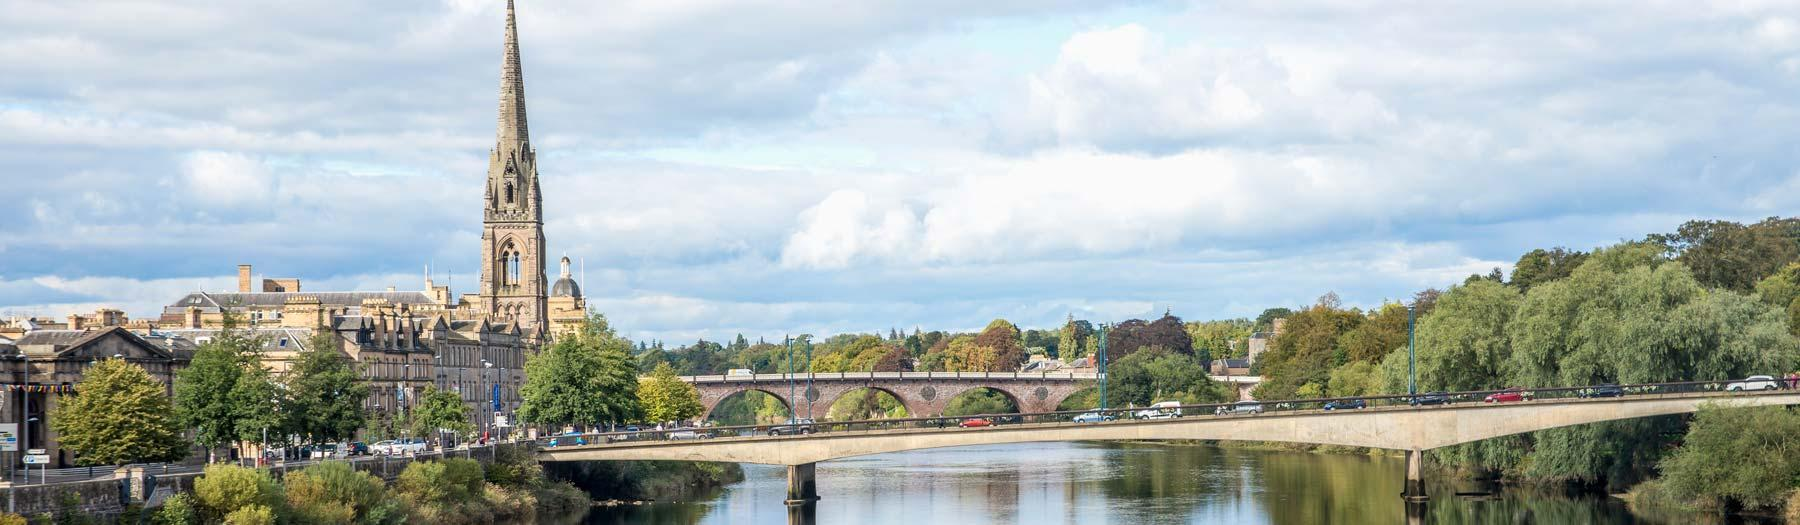 Image: Perth and the River Tay. Credit: Image republished with kind permission of VisitScotland.